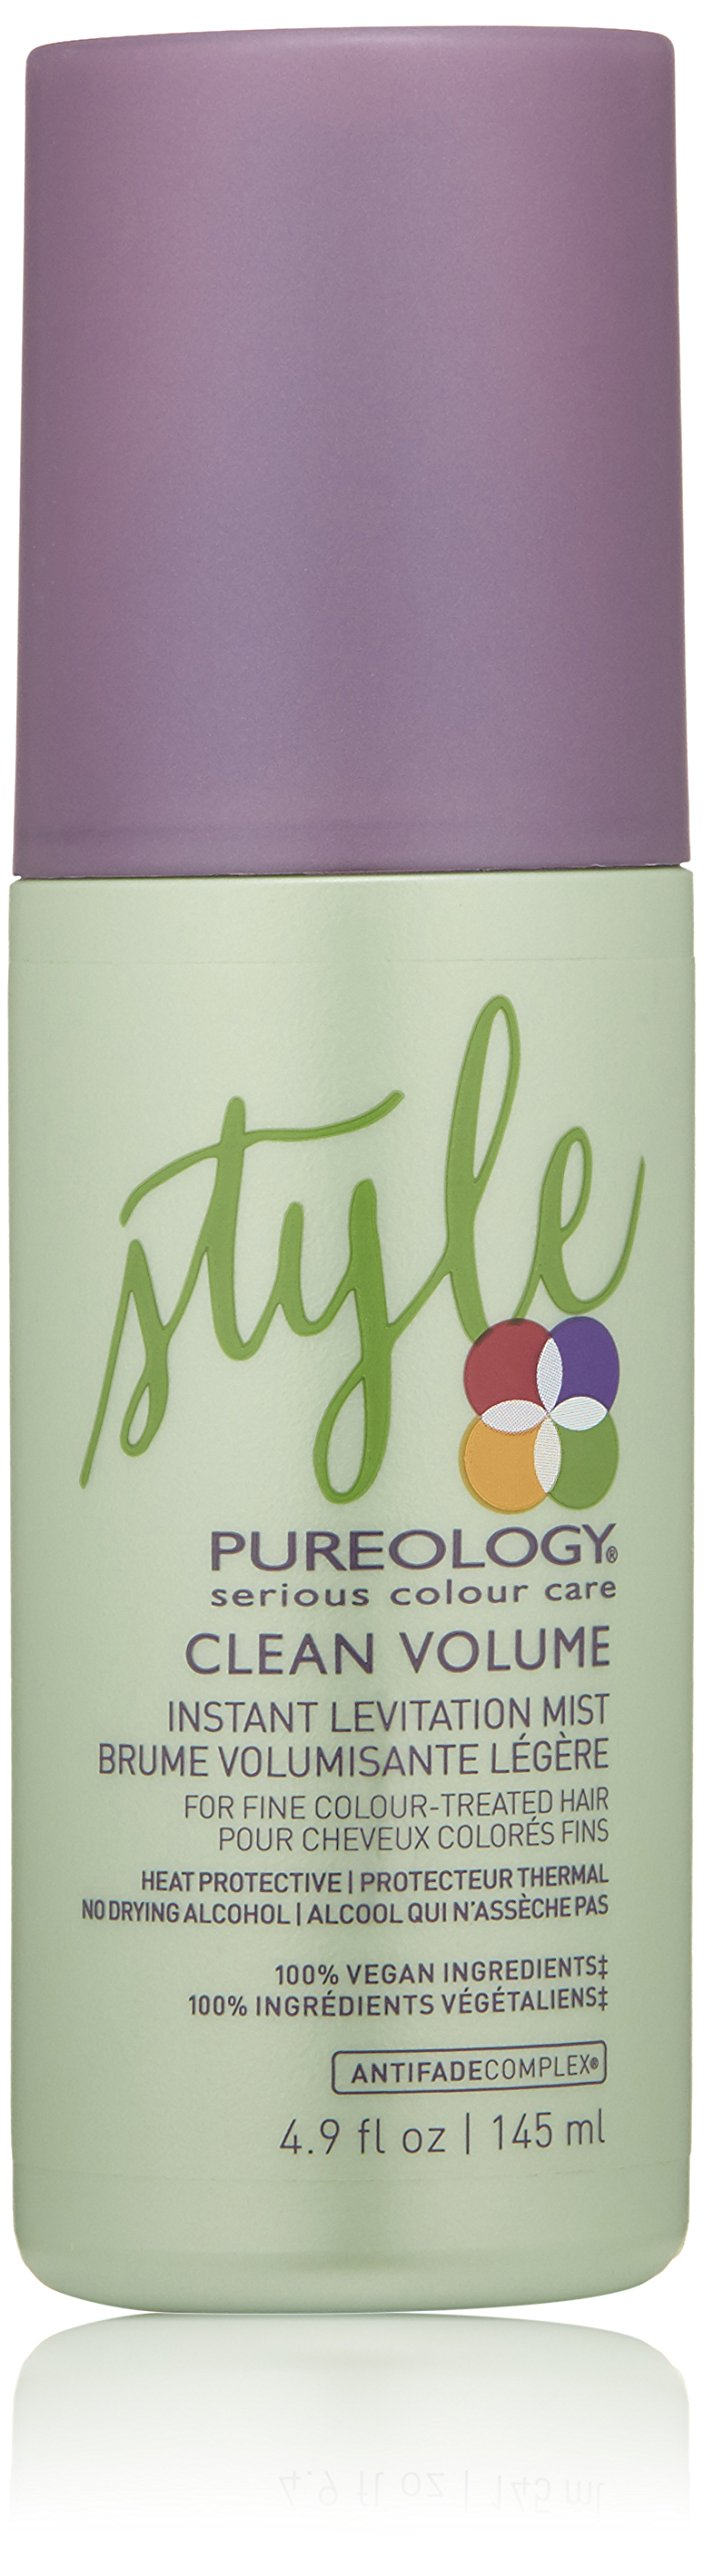 Pureology Clean Volume Instant Levitation Mist, 4.9 Fl Oz by Pureology